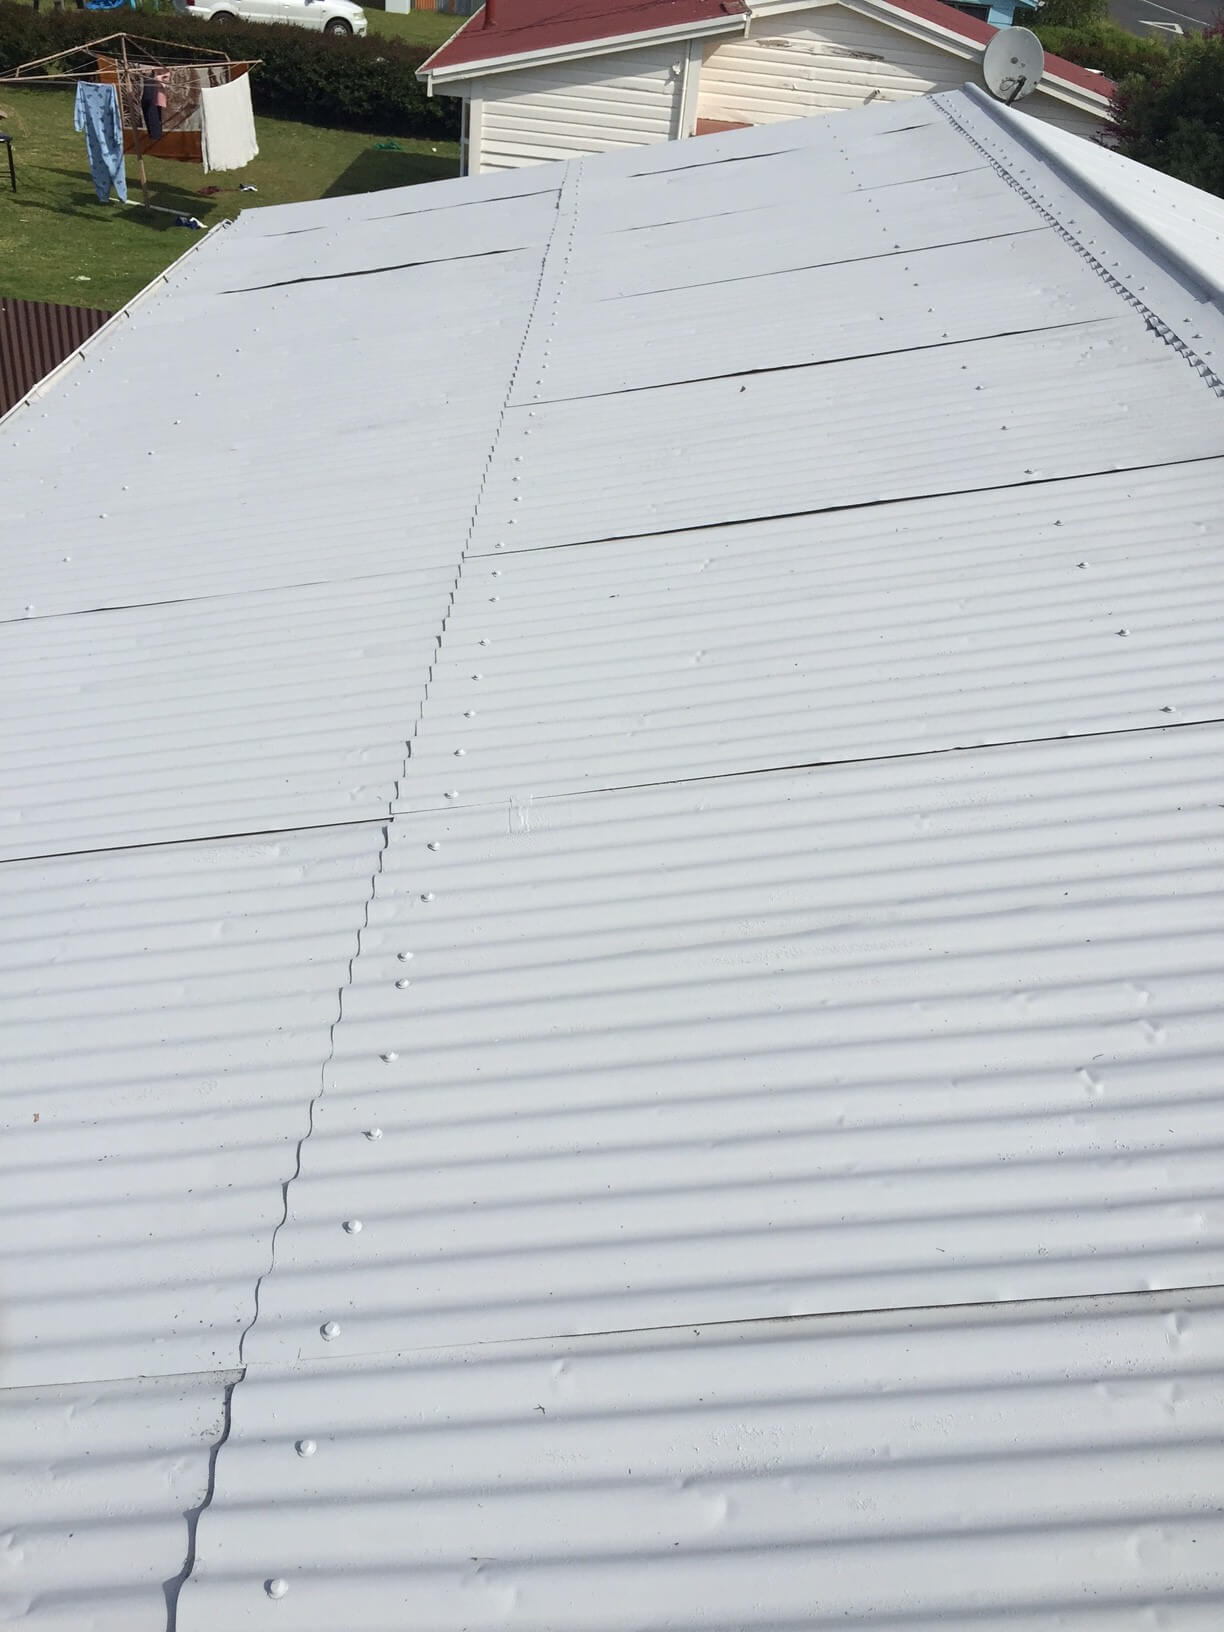 5 Star Roof Painting Can Help With Roof Maintenance